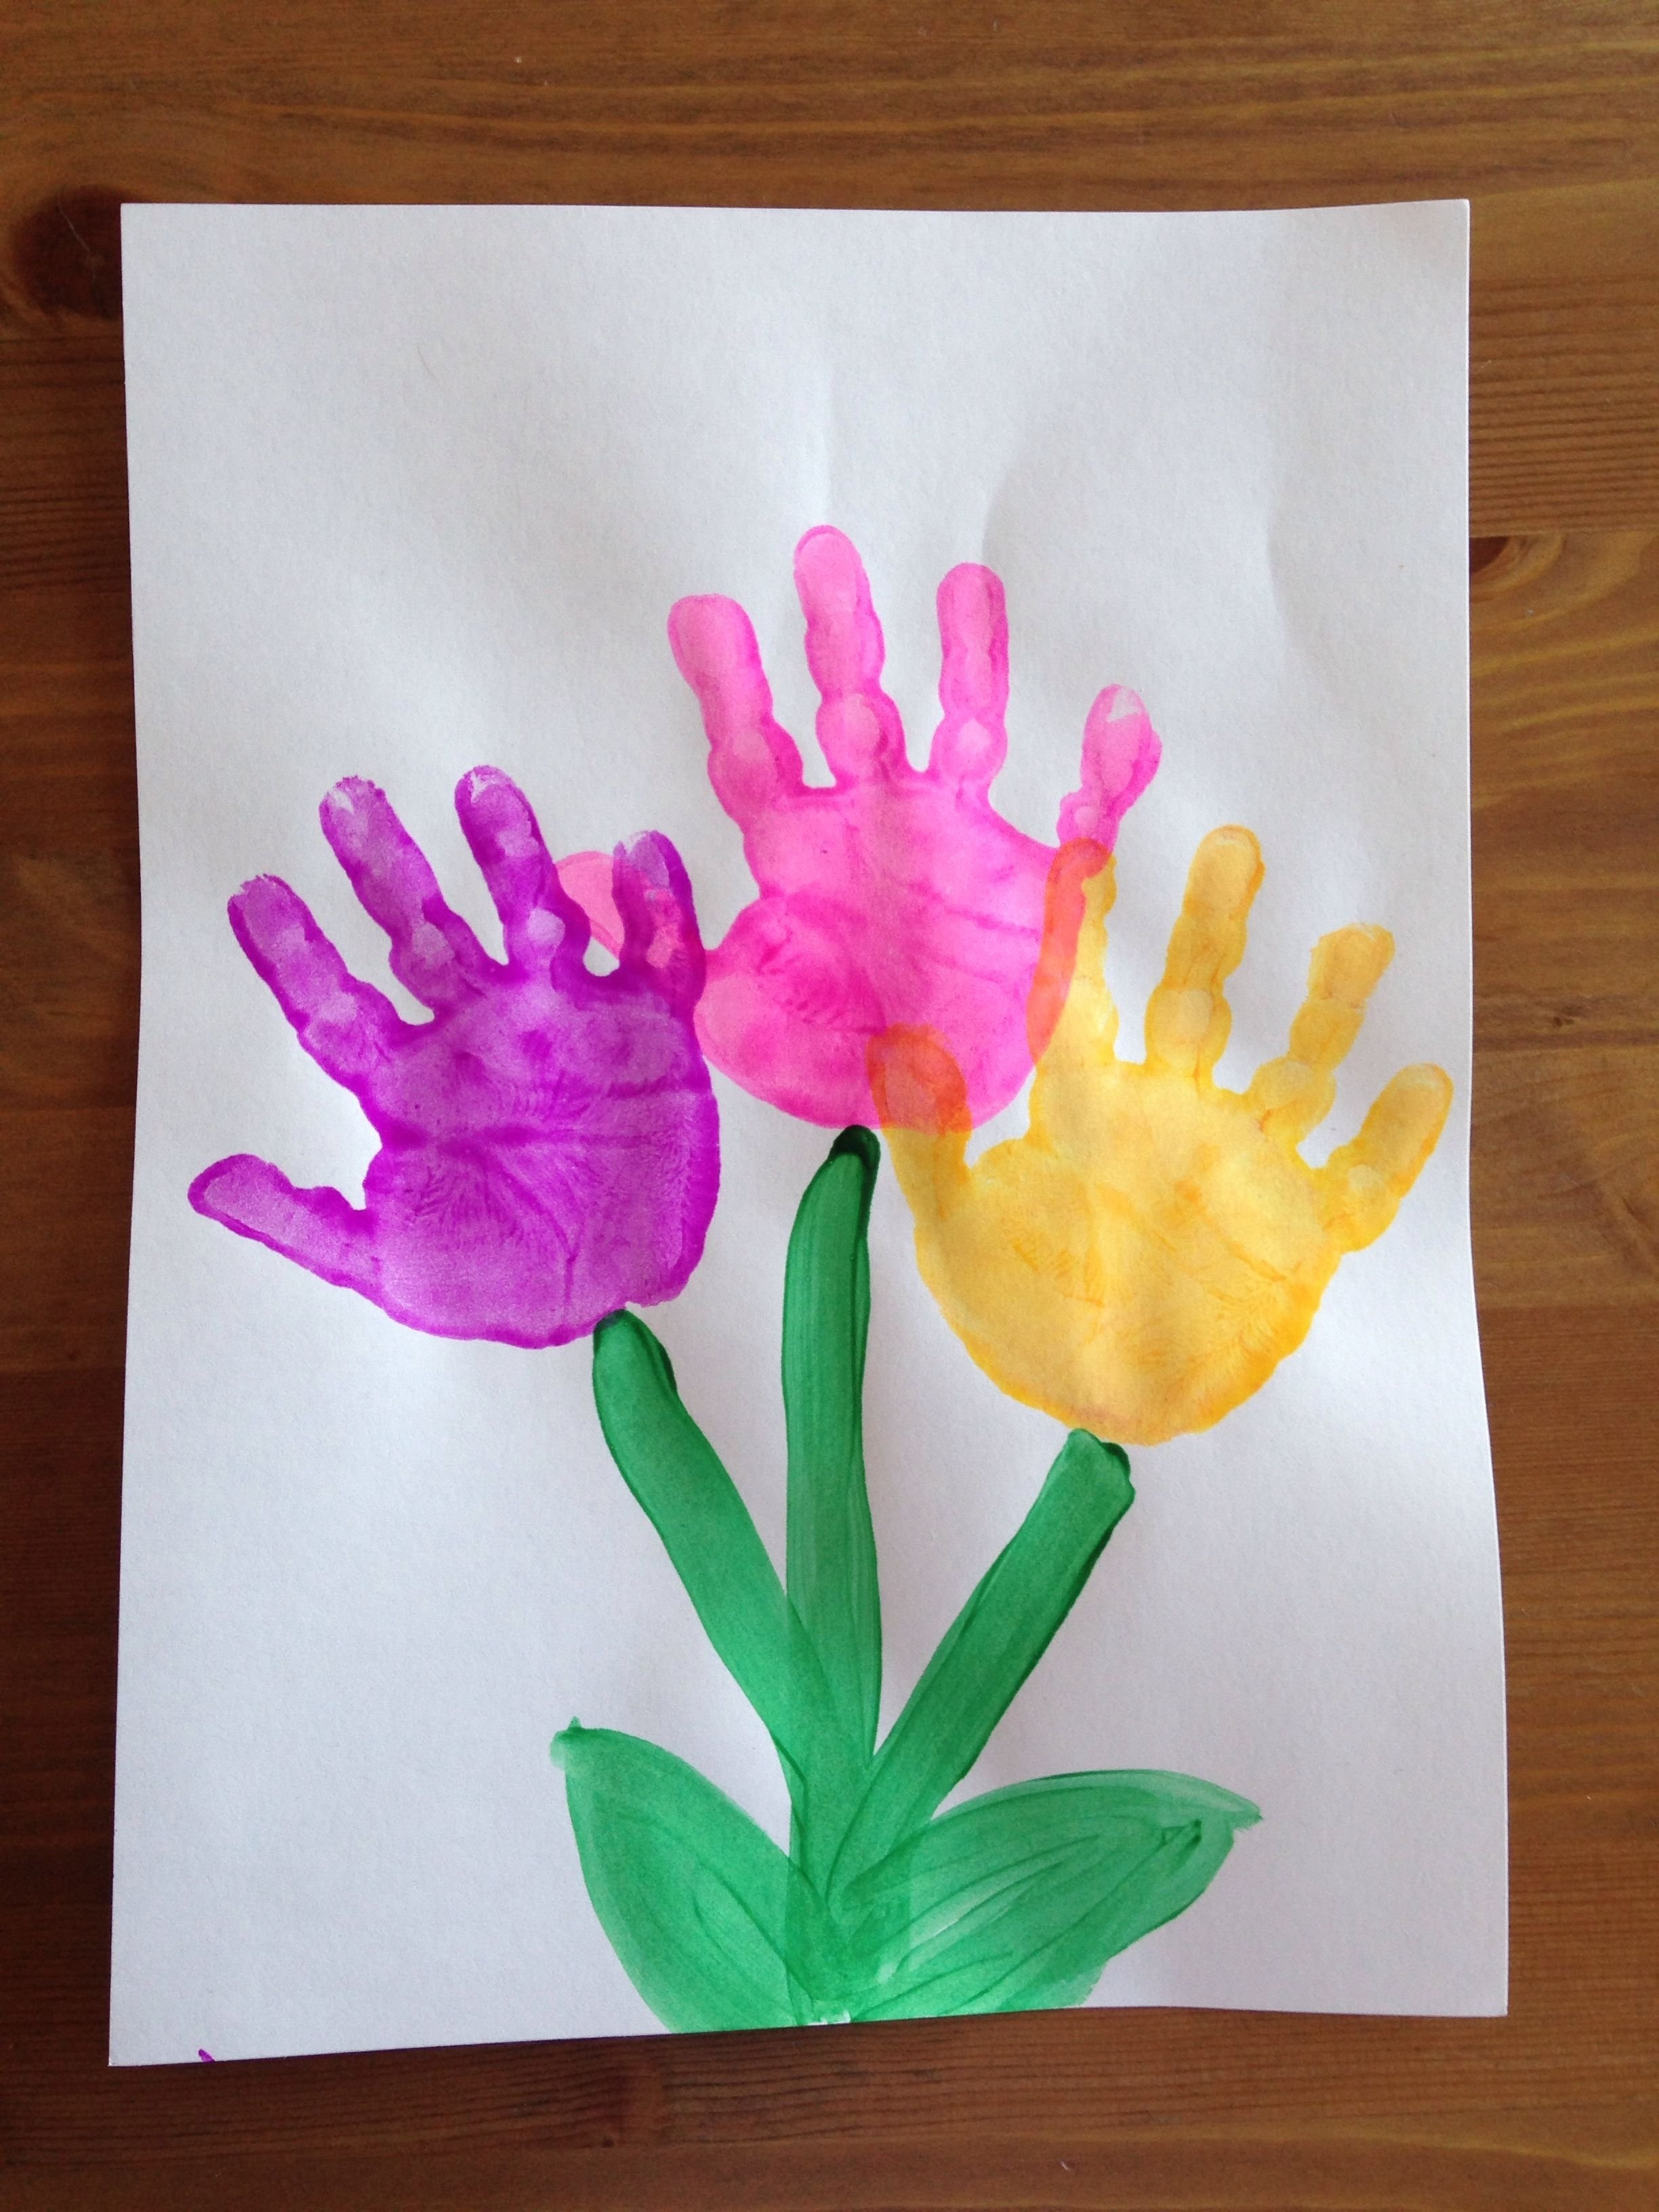 10 Most Recommended Spring Craft Ideas For Preschoolers handprint flower craft spring craft preschool craft kids 1 2021